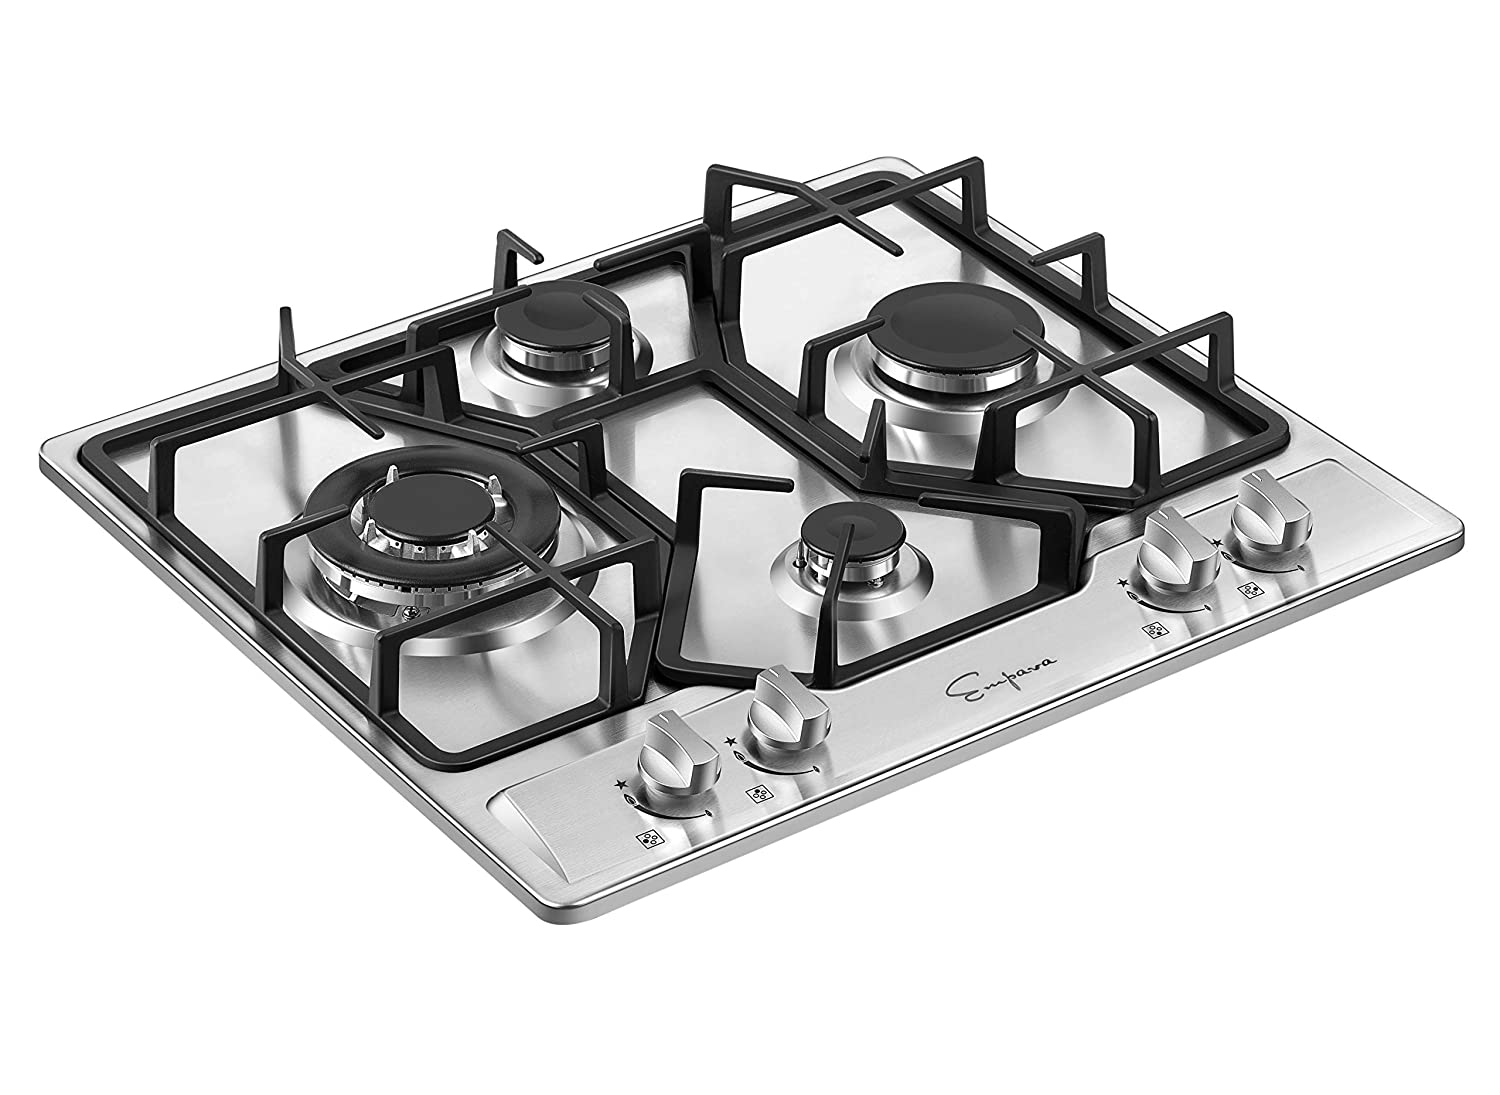 Empava 36XGC881 36 Inch Stainless Steel Gas Professional 5 Italy Sabaf Burners Stove Top Certified with Thermocouple Protection Cooktops Silver